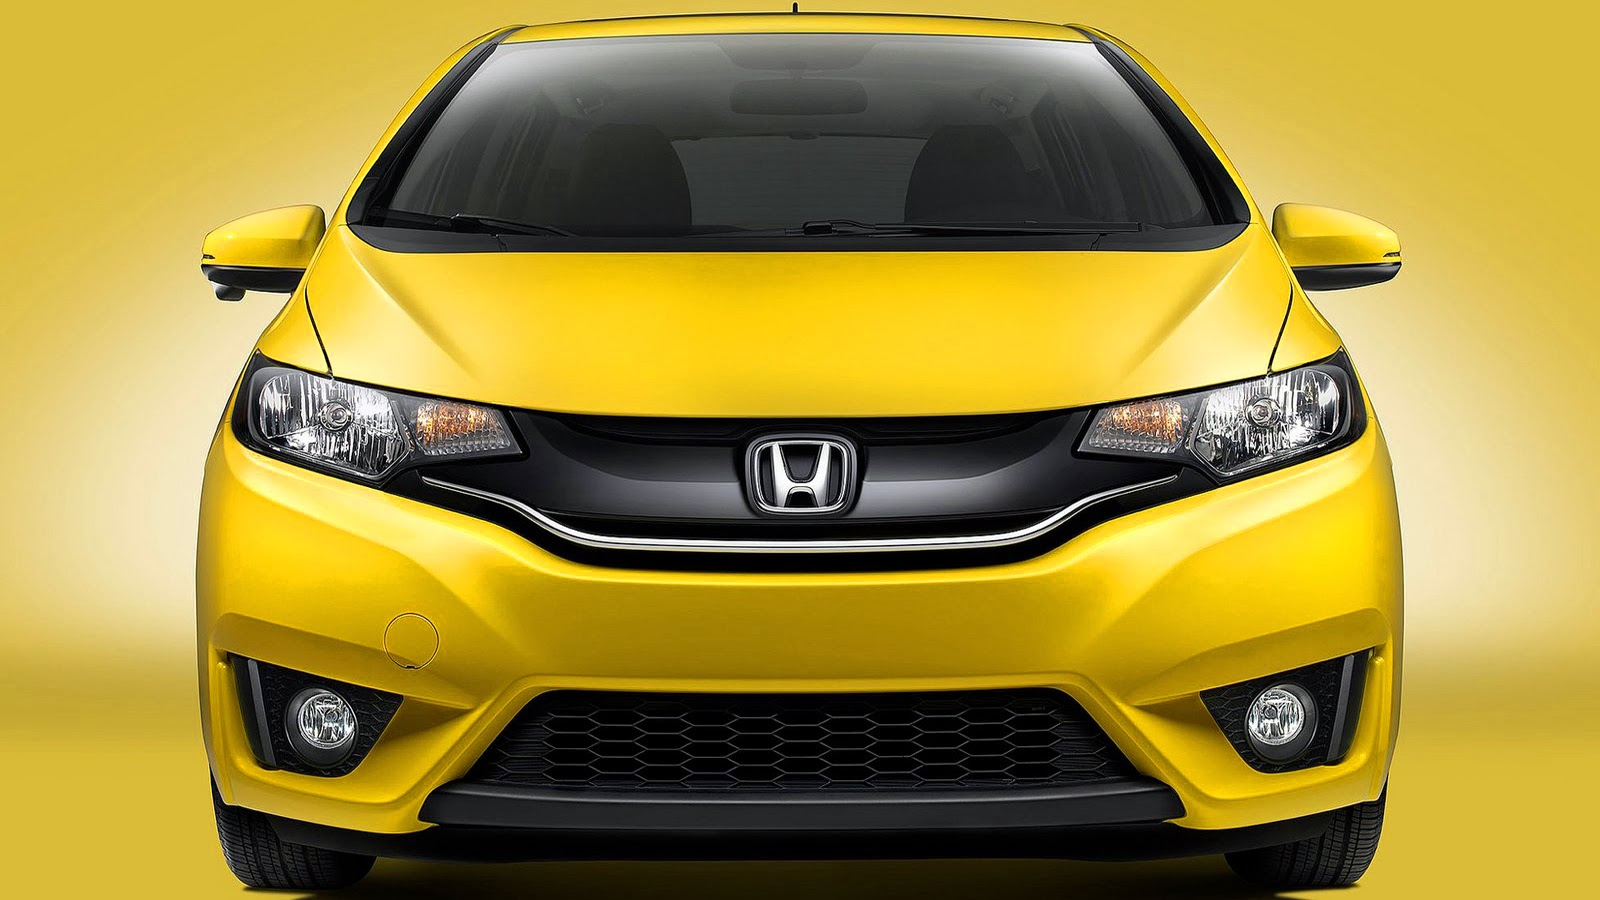 Honda Unveiled The All New 2015 Fit At The 2014 North American  International Auto Show. Set To Go On Sale In The U.S. In The Spring Of  2014, The New Fit Is ...